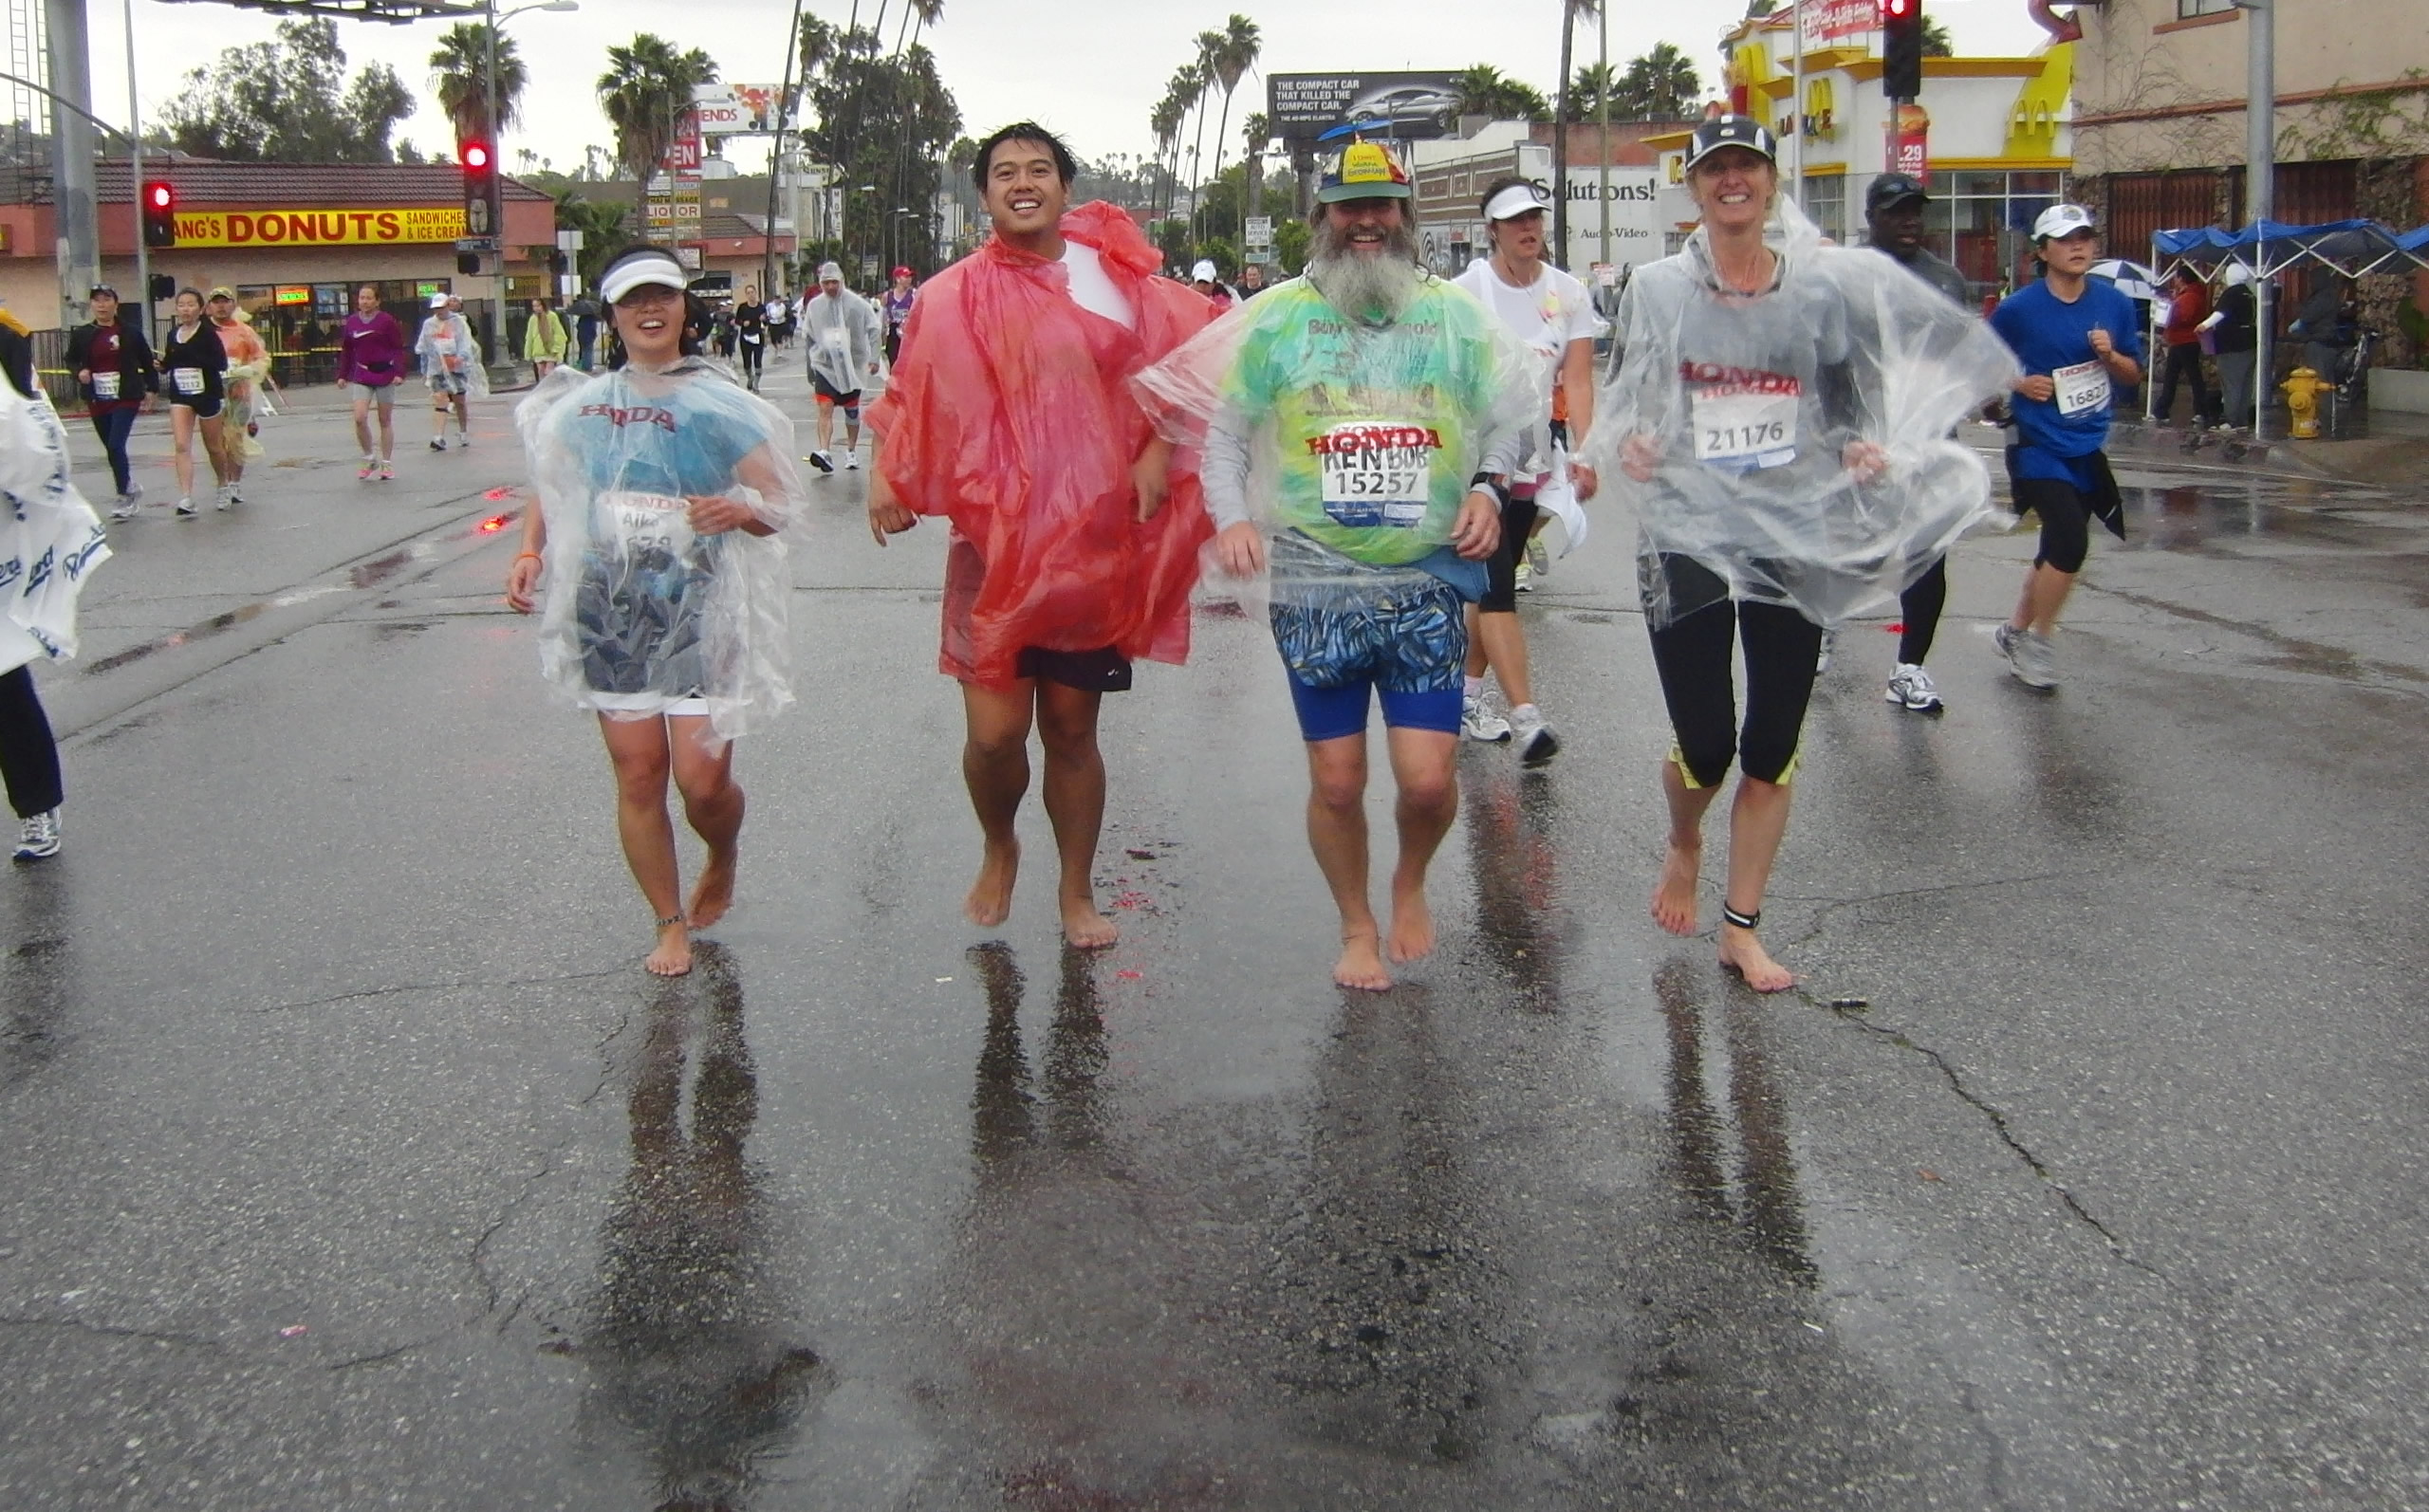 Aika, Merlin, Ke nBob, Caity, running barefoot in Los Angeles Marathon 2011 March 20